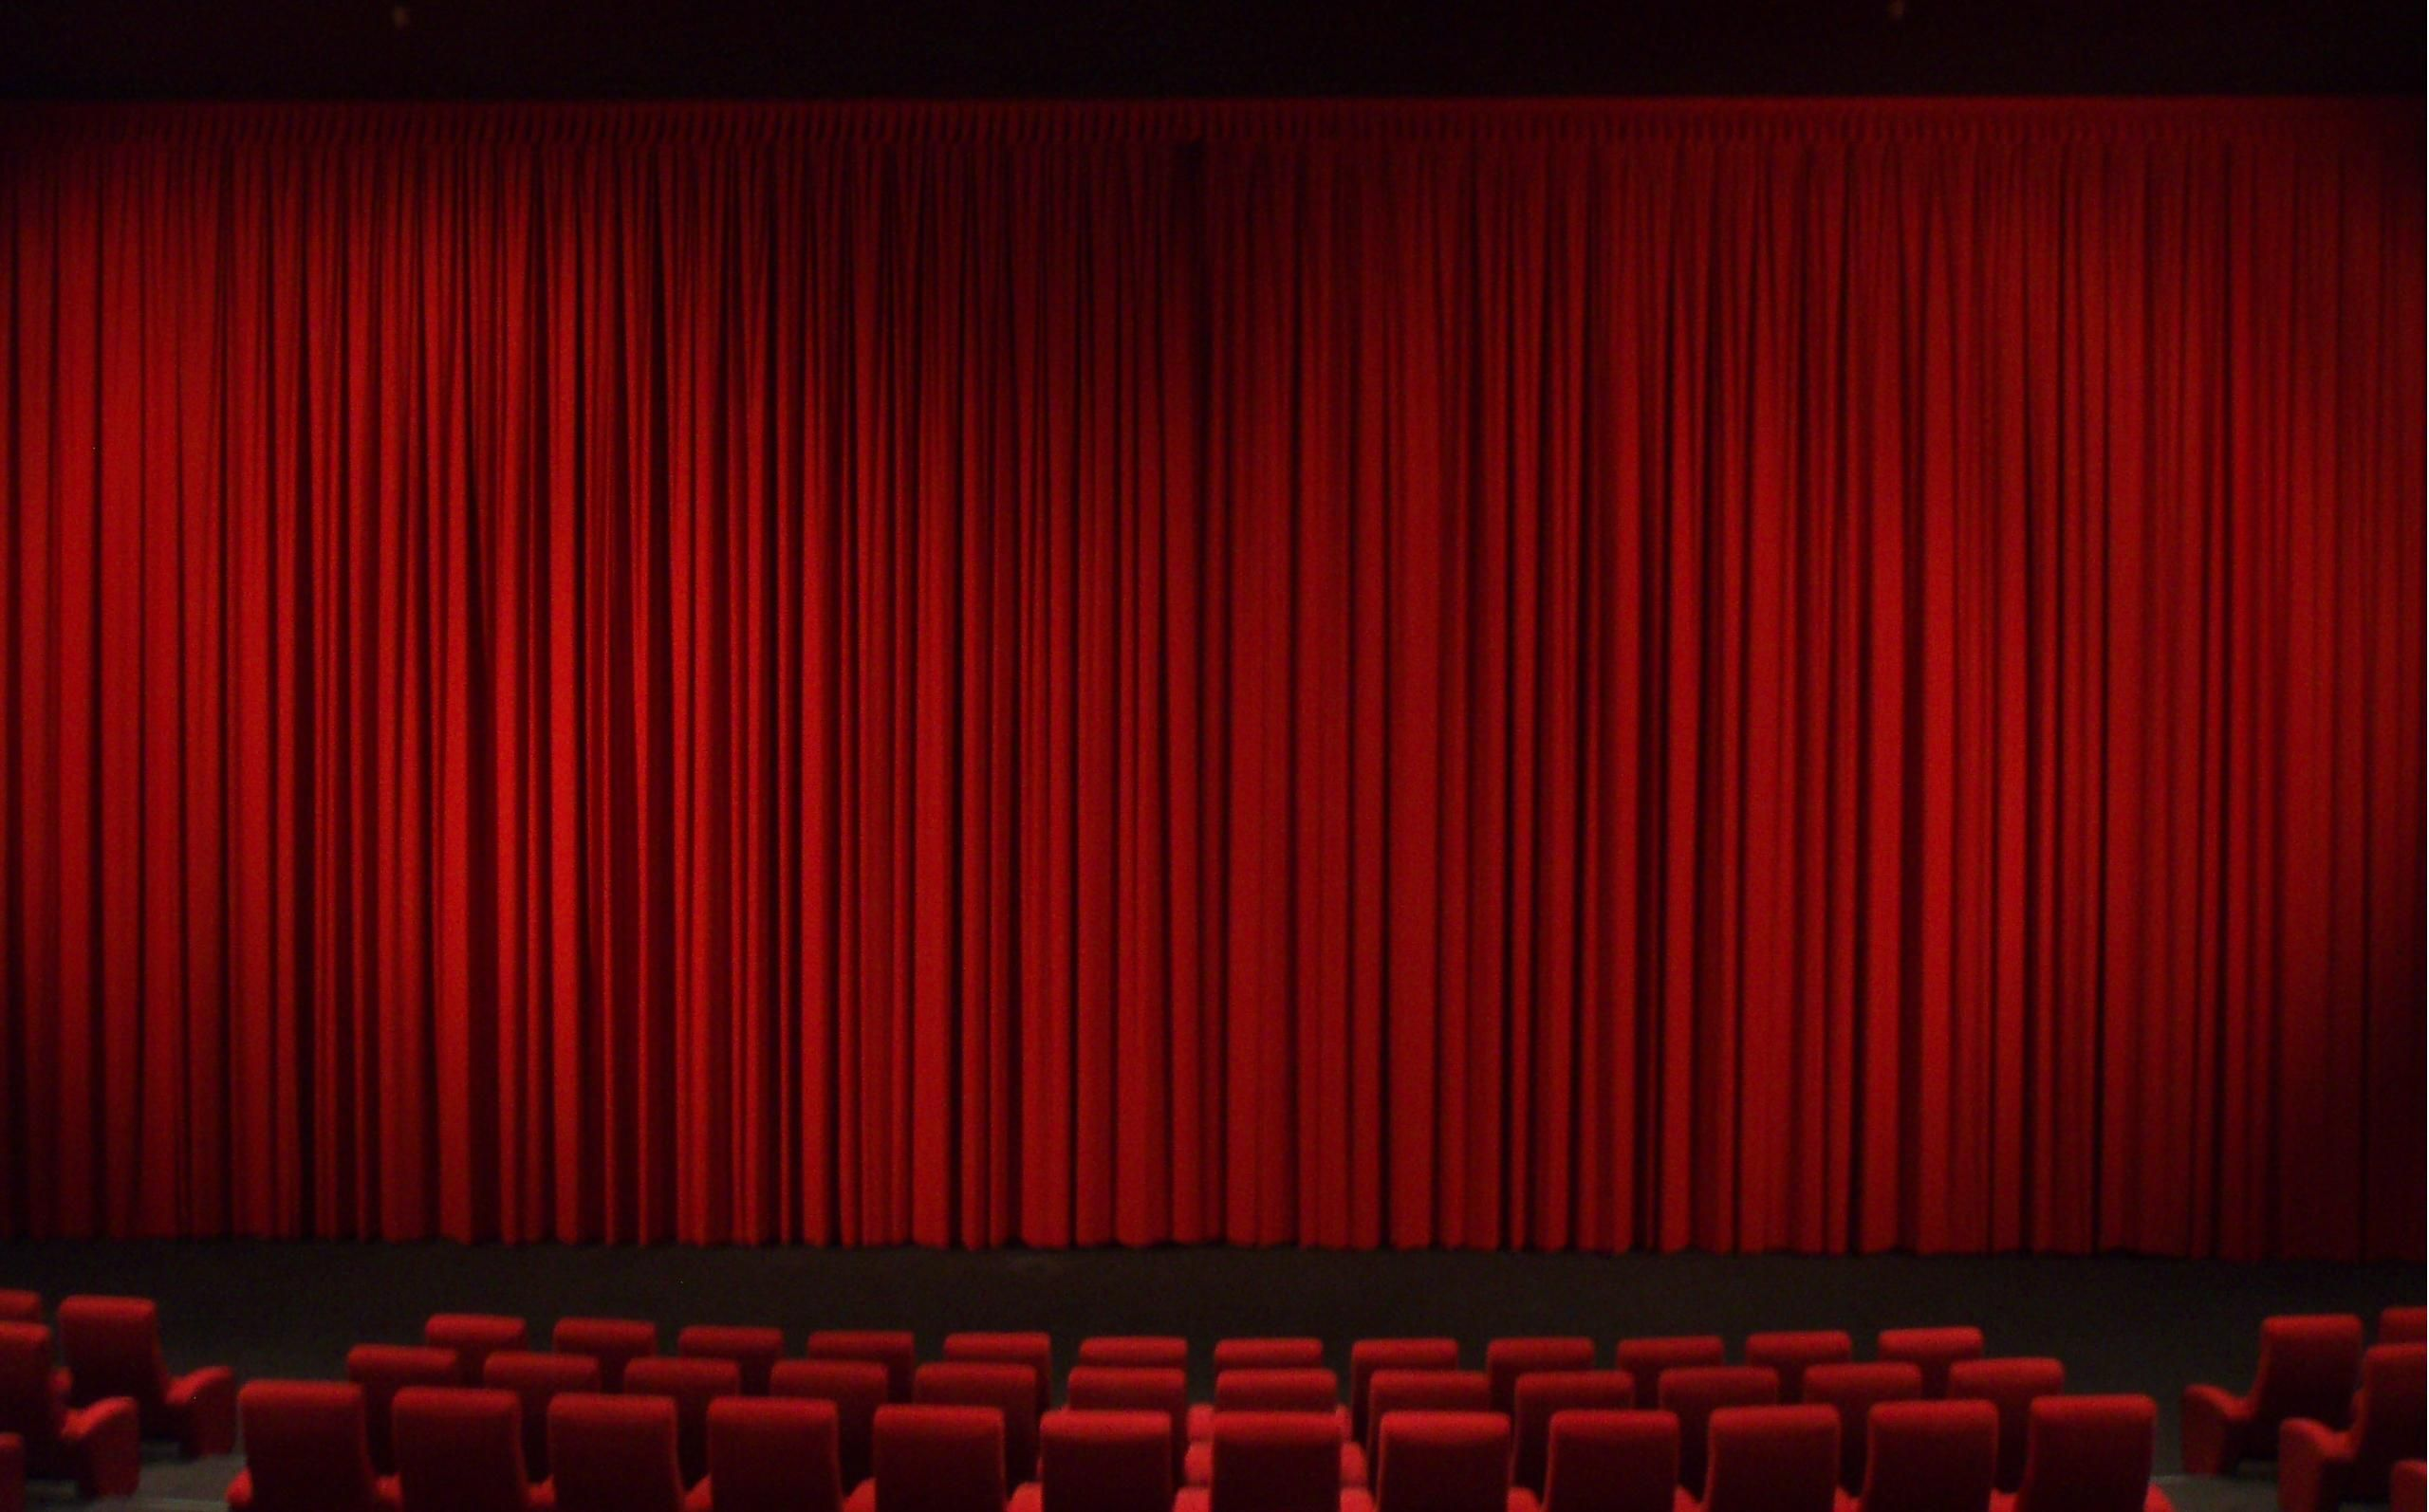 theater theatrical interior background best template clipart curtain shower powerpoint curtains stage home drapes designs